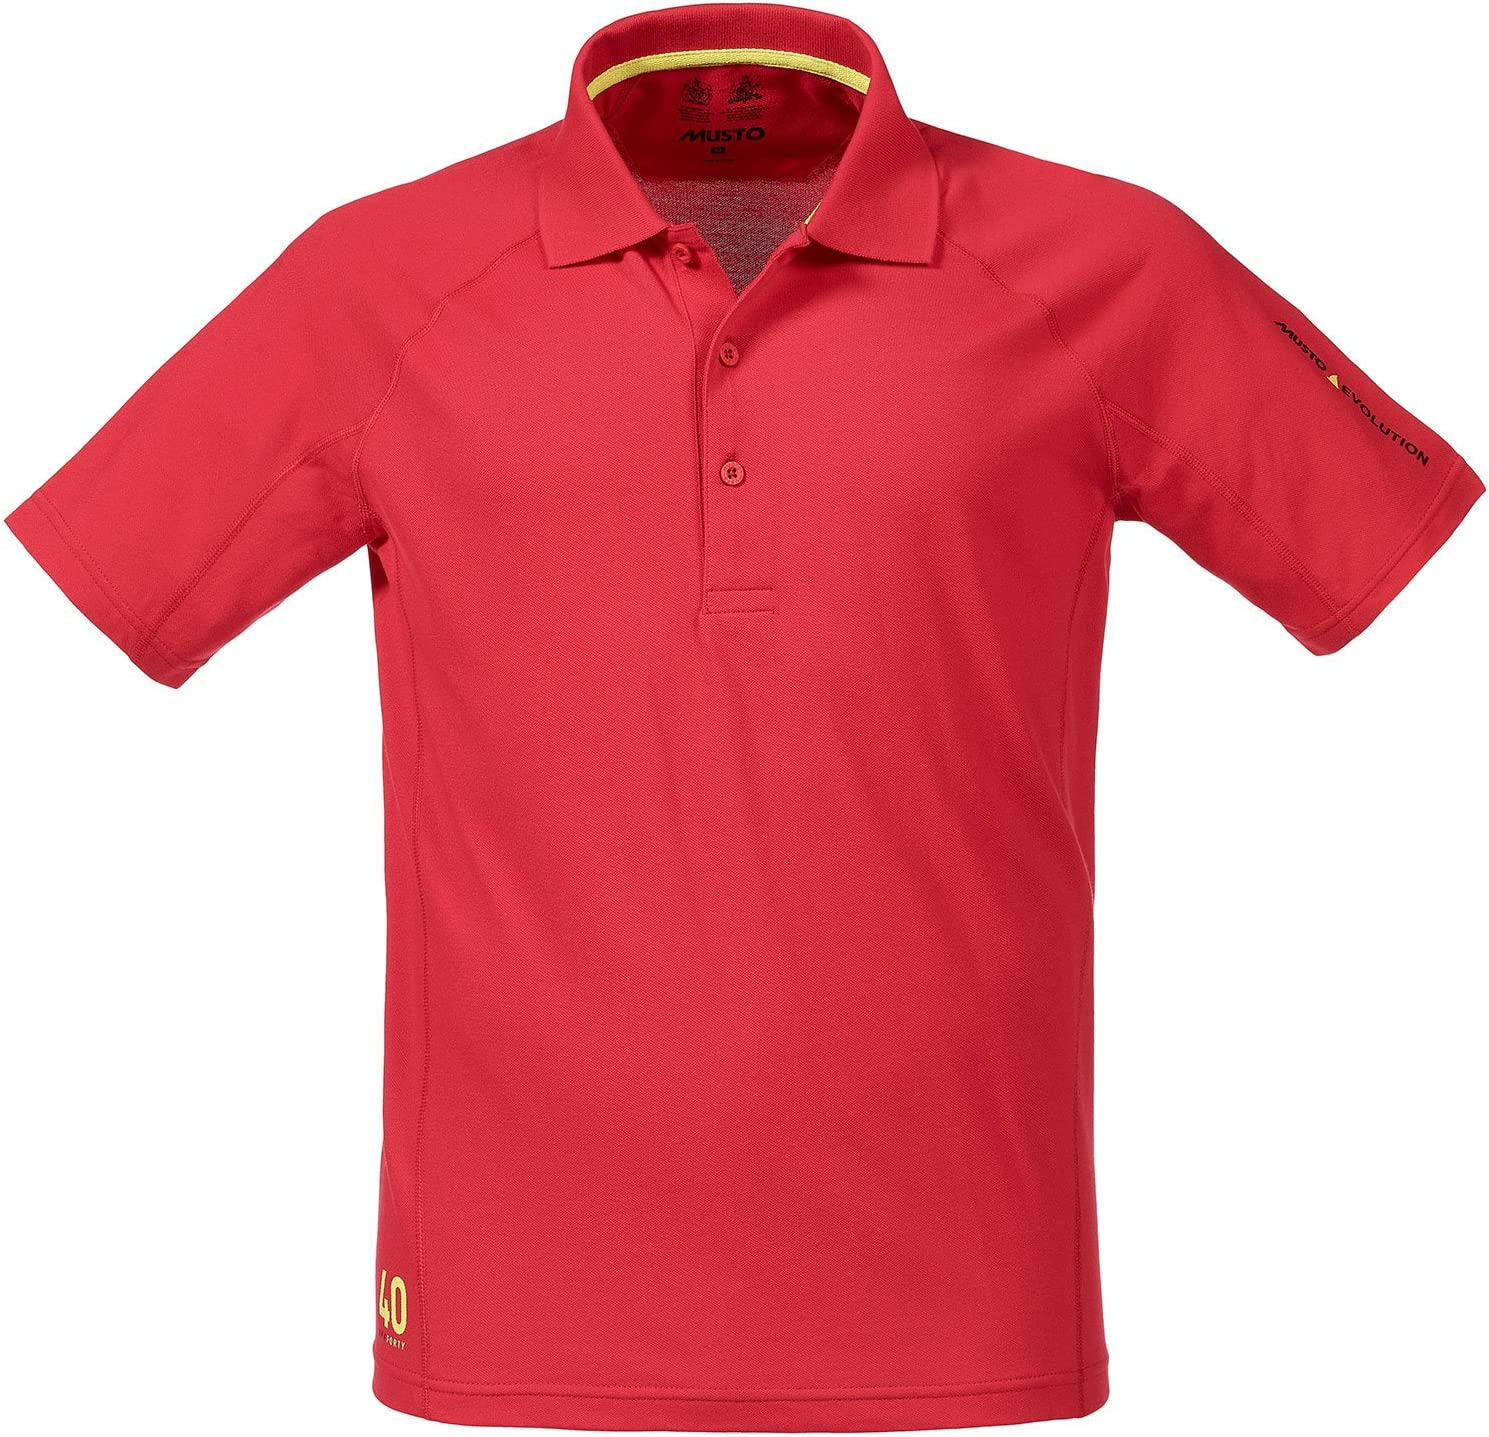 Musto Evolution Sunblock Short Sleeved Polo Top in True Red SE0264 ...